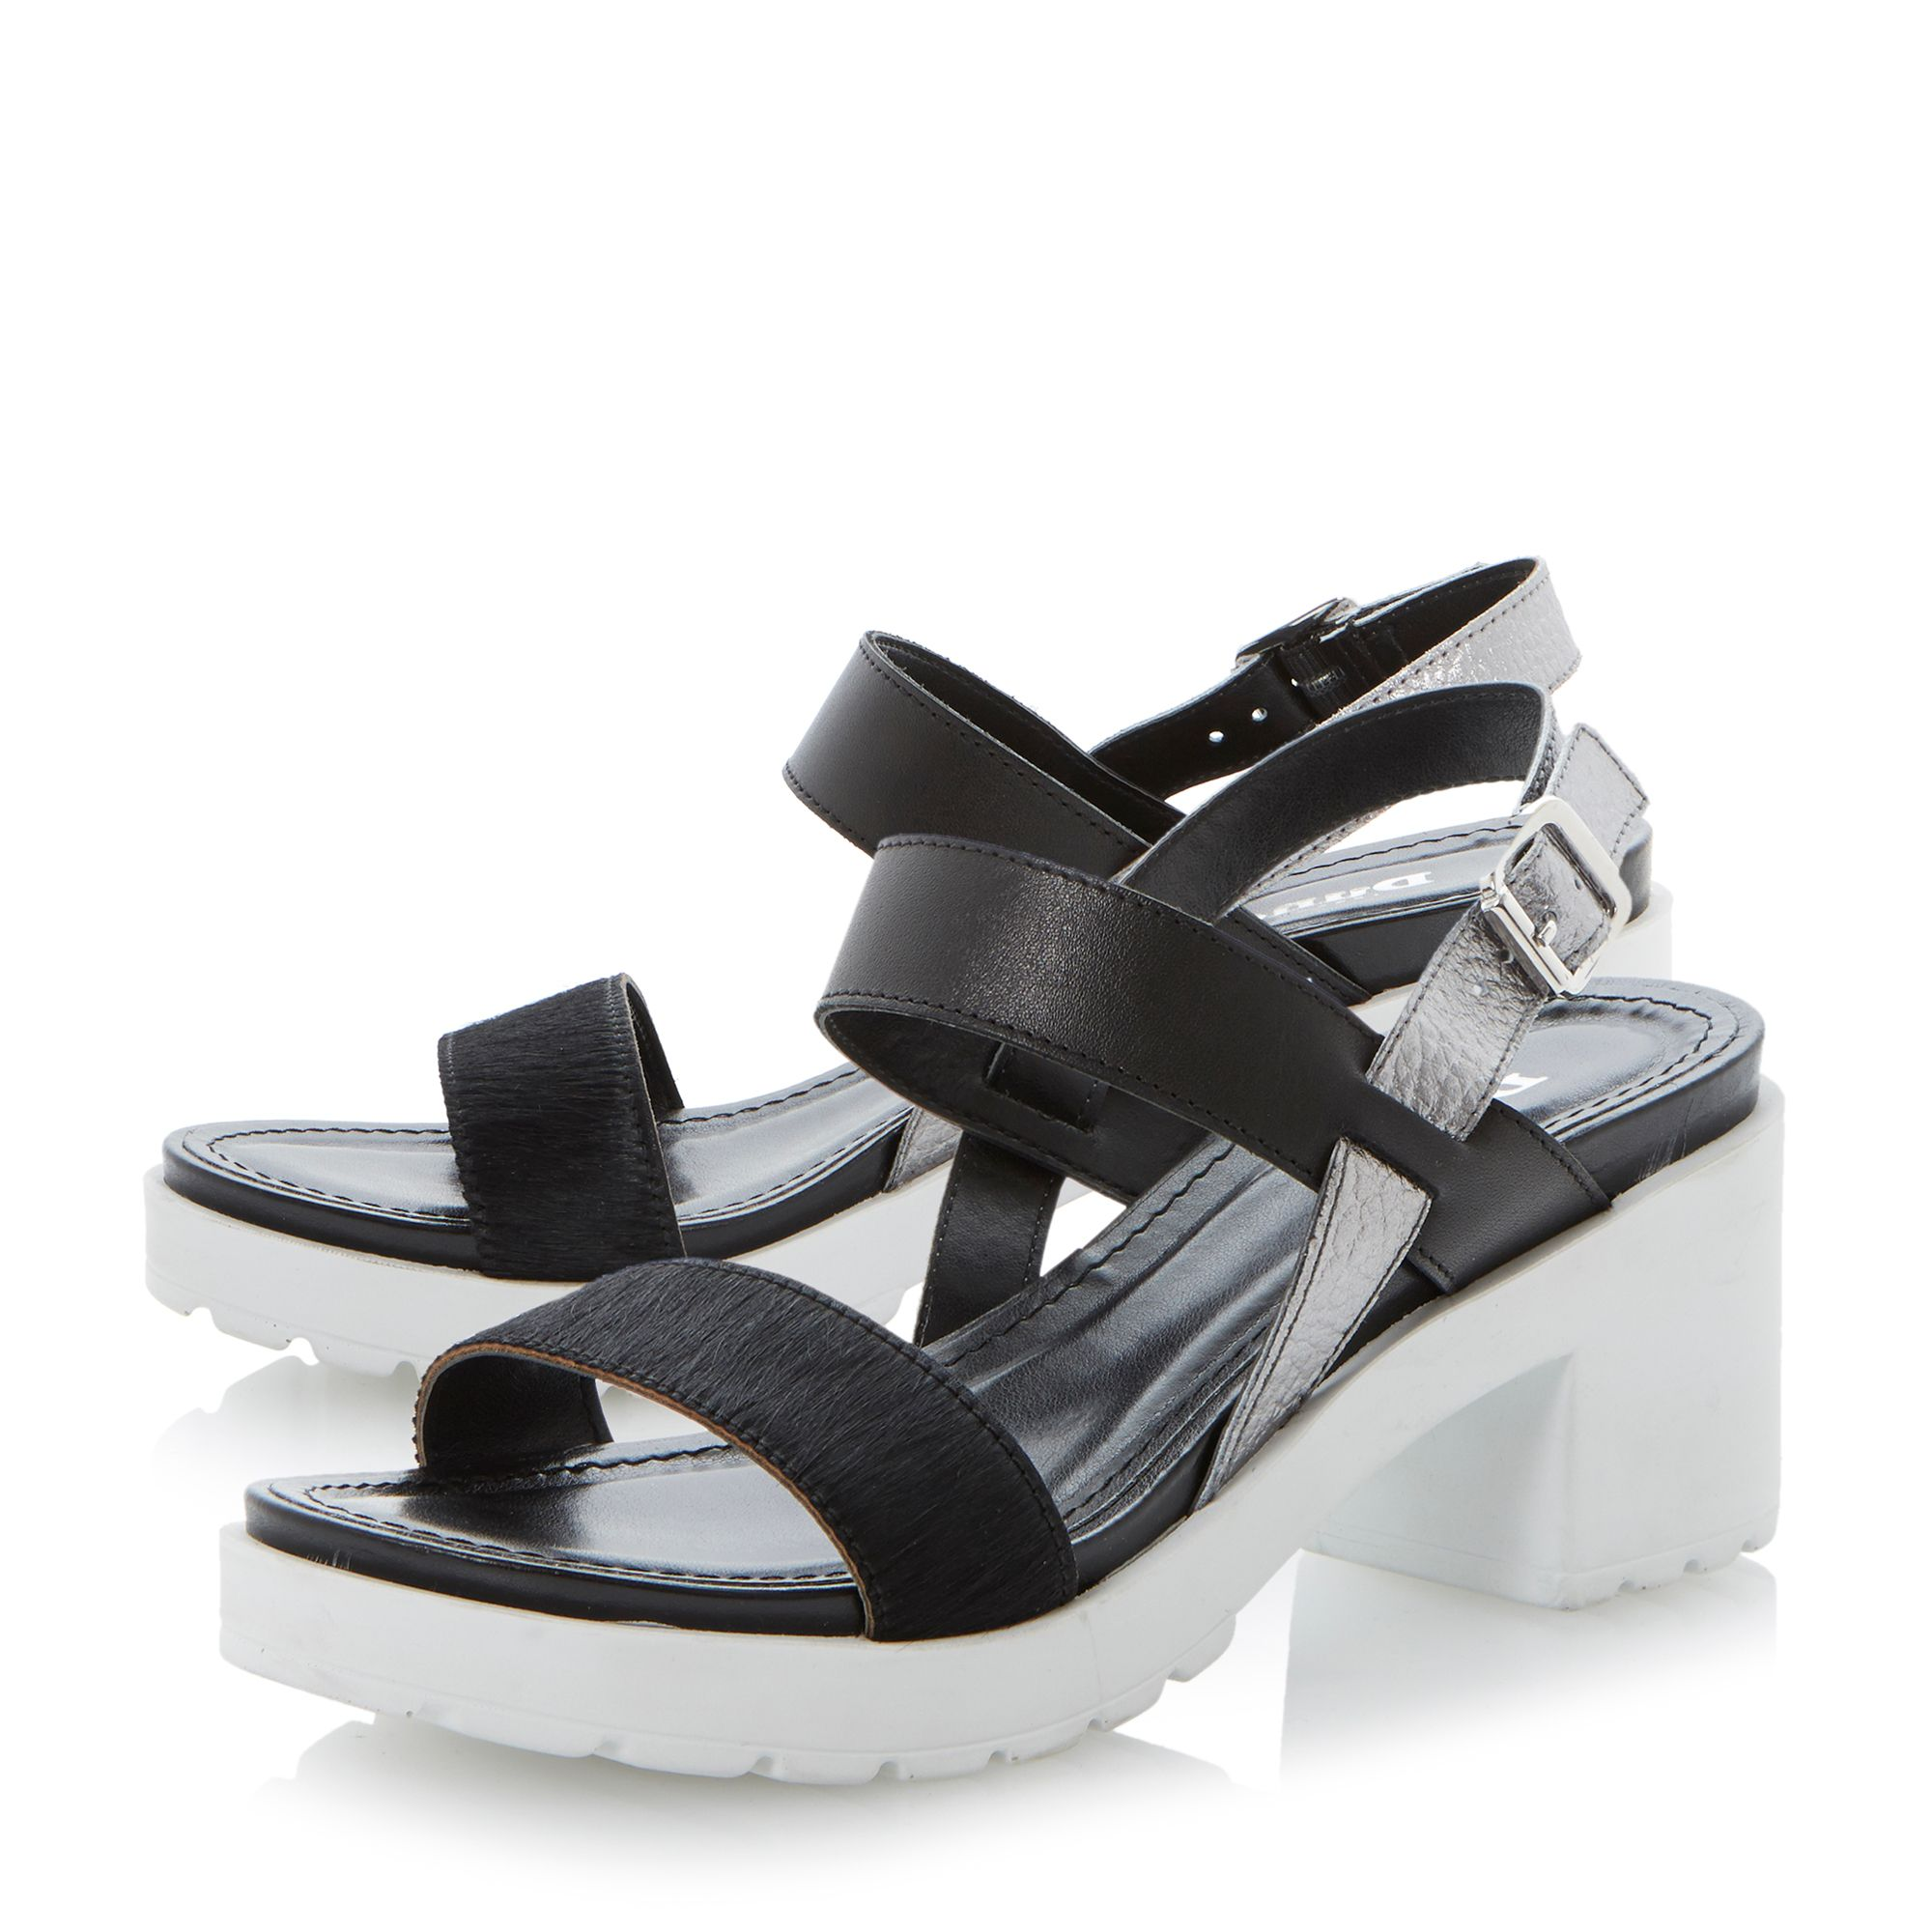 Fibie block heel sandals